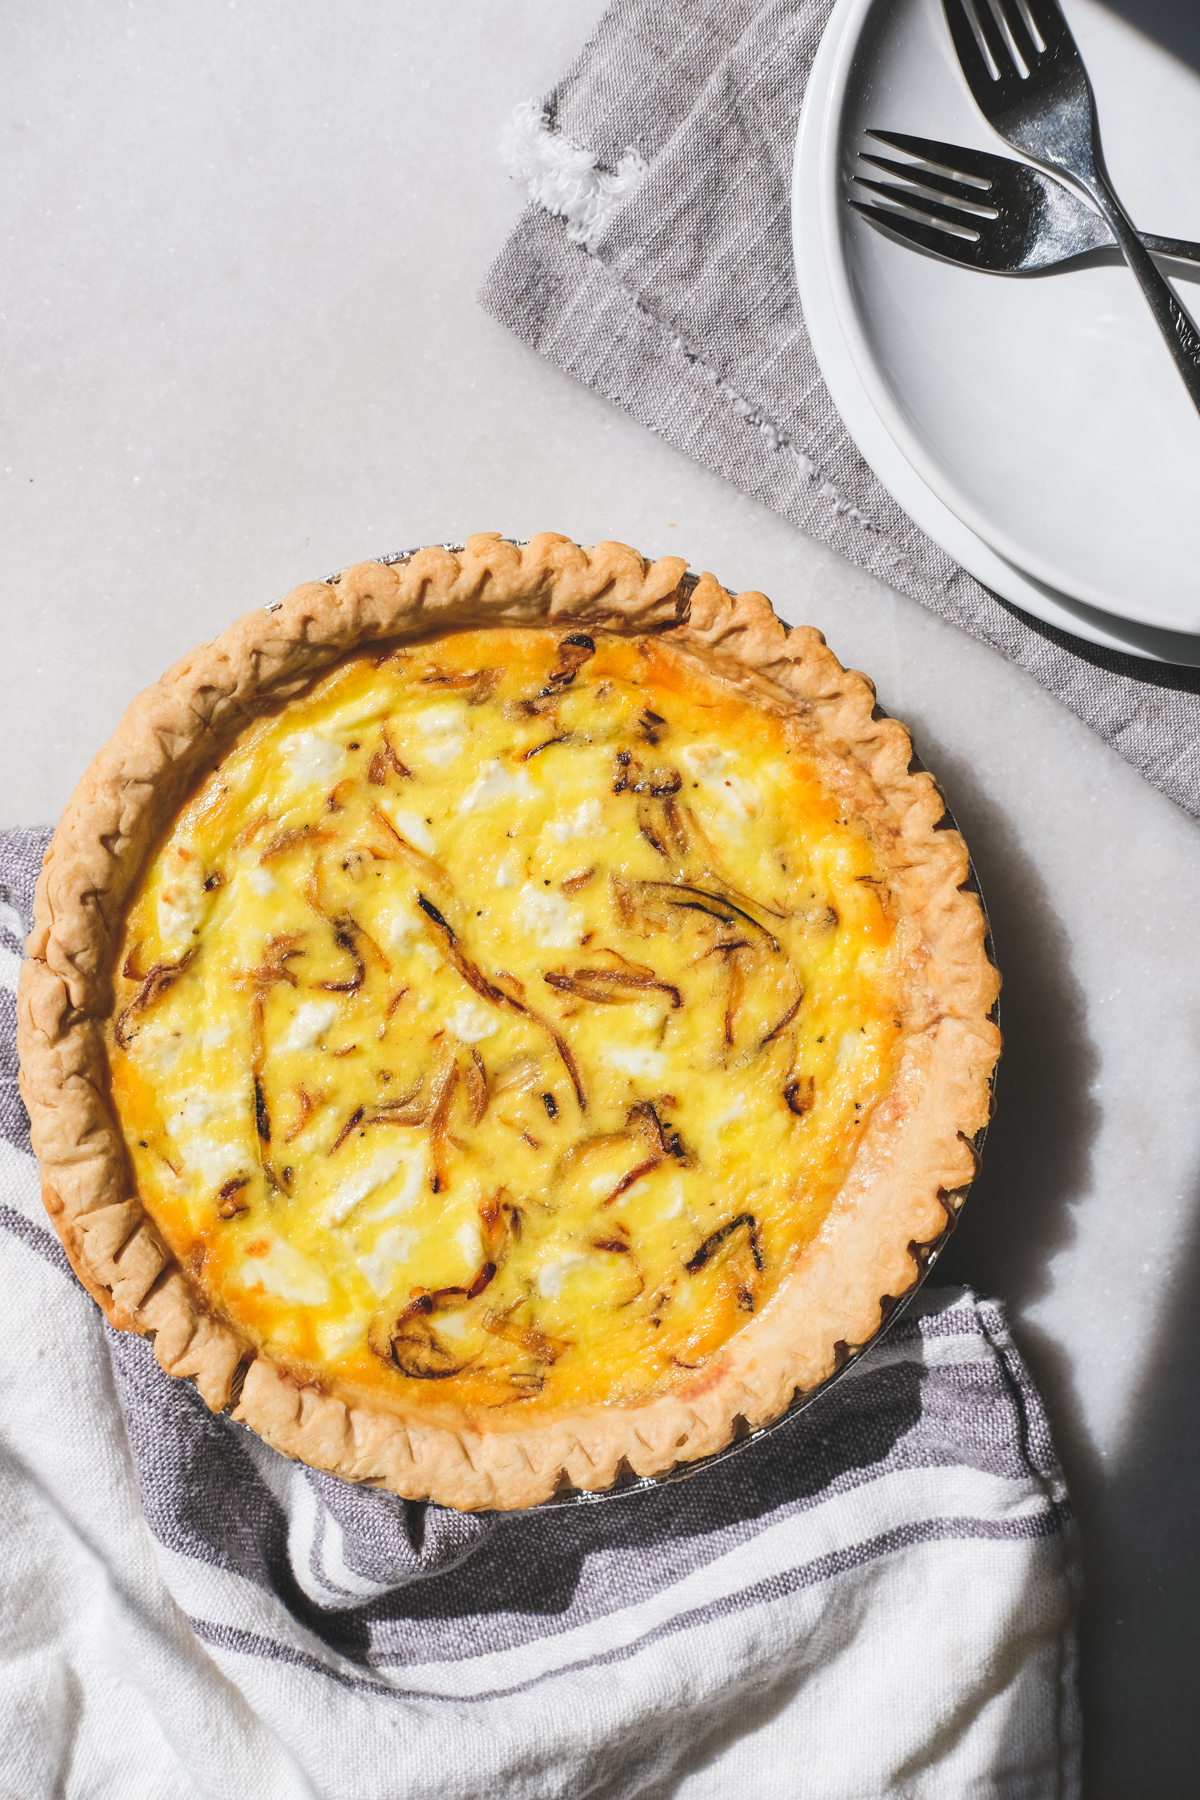 caramelized onion and goat cheese quiche on a breakfast table with plates and forks